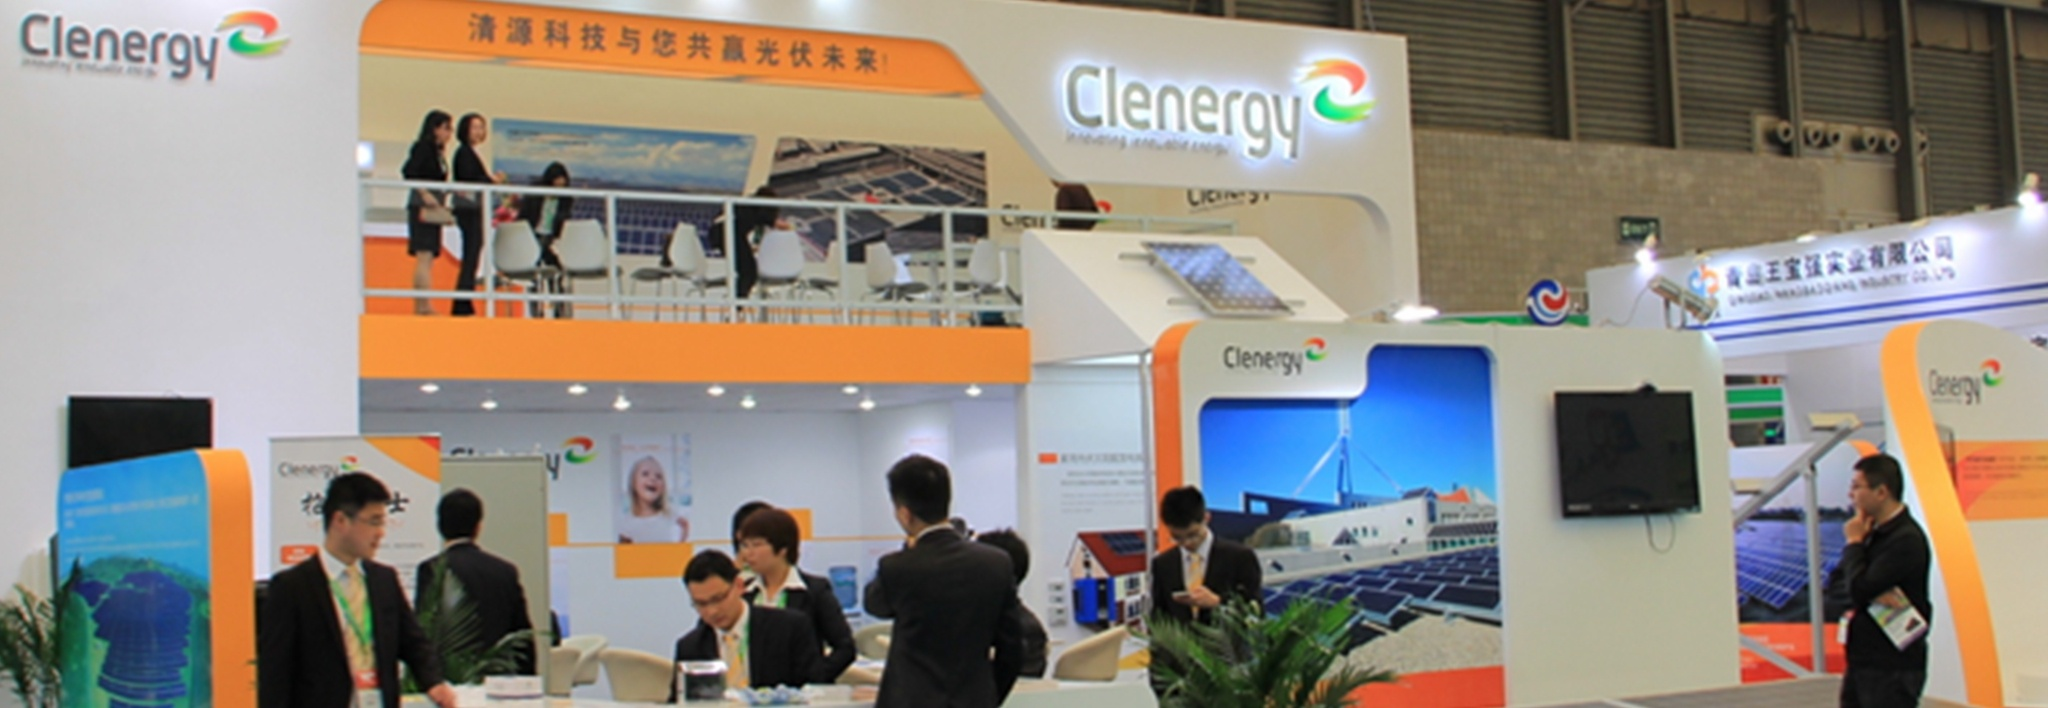 Clenergy at SNEC 2015 01